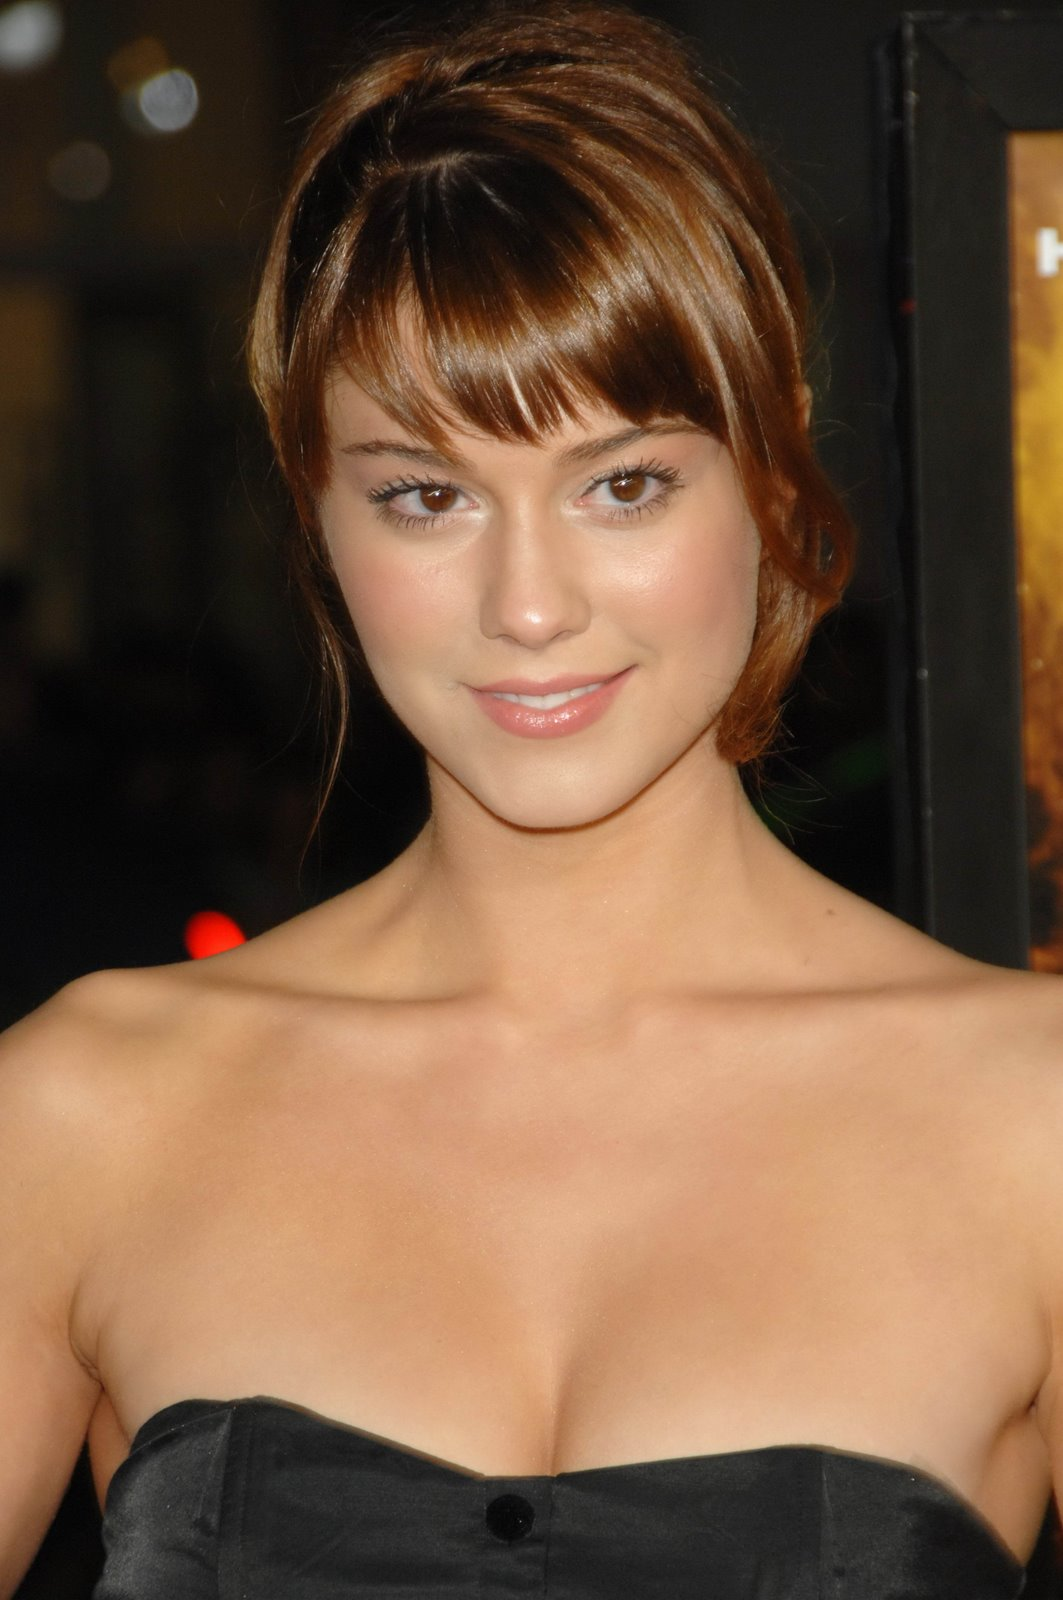 Mary Elizabeth Winstead pictures, Die Hard 4.0 Actress